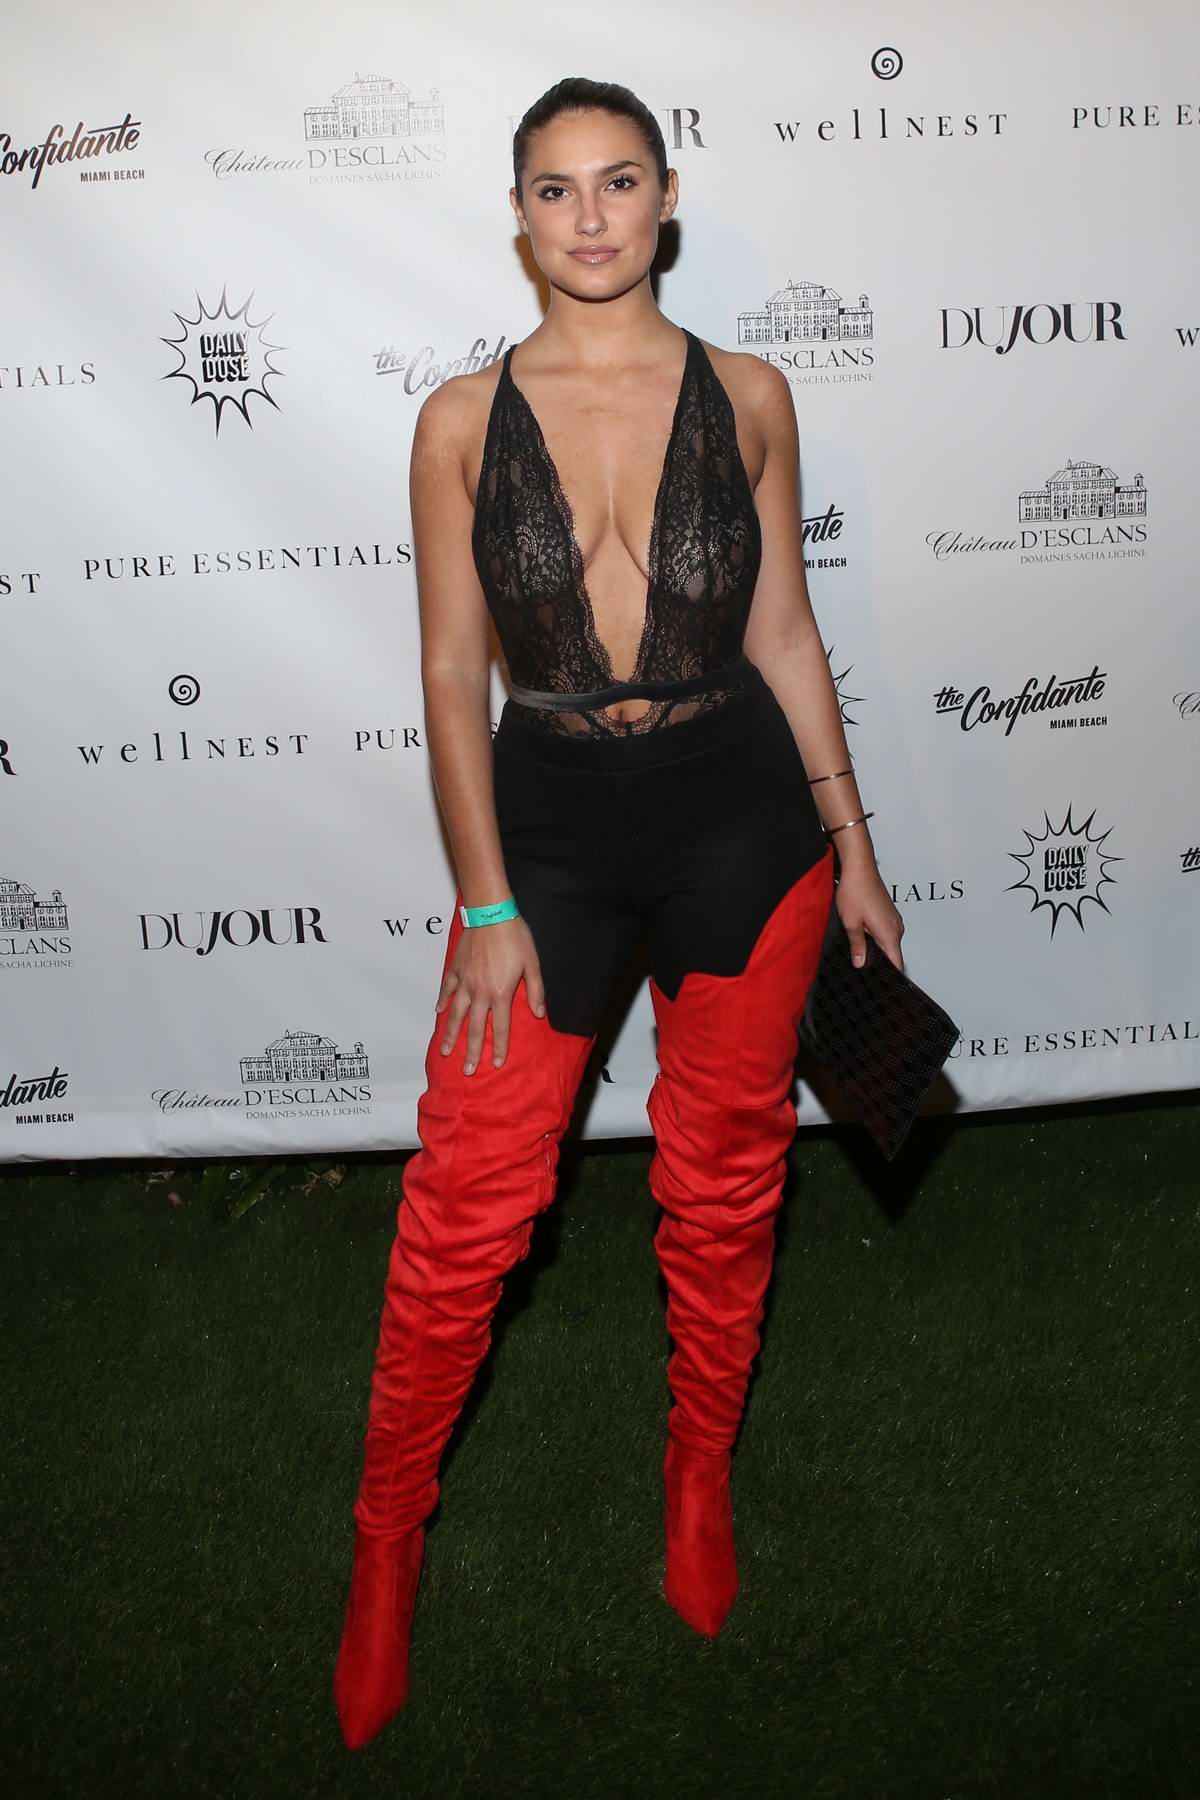 Tao Wickrath attends Sofia Richie's Art Basel party for Dujour Magazine in Miami, Florida